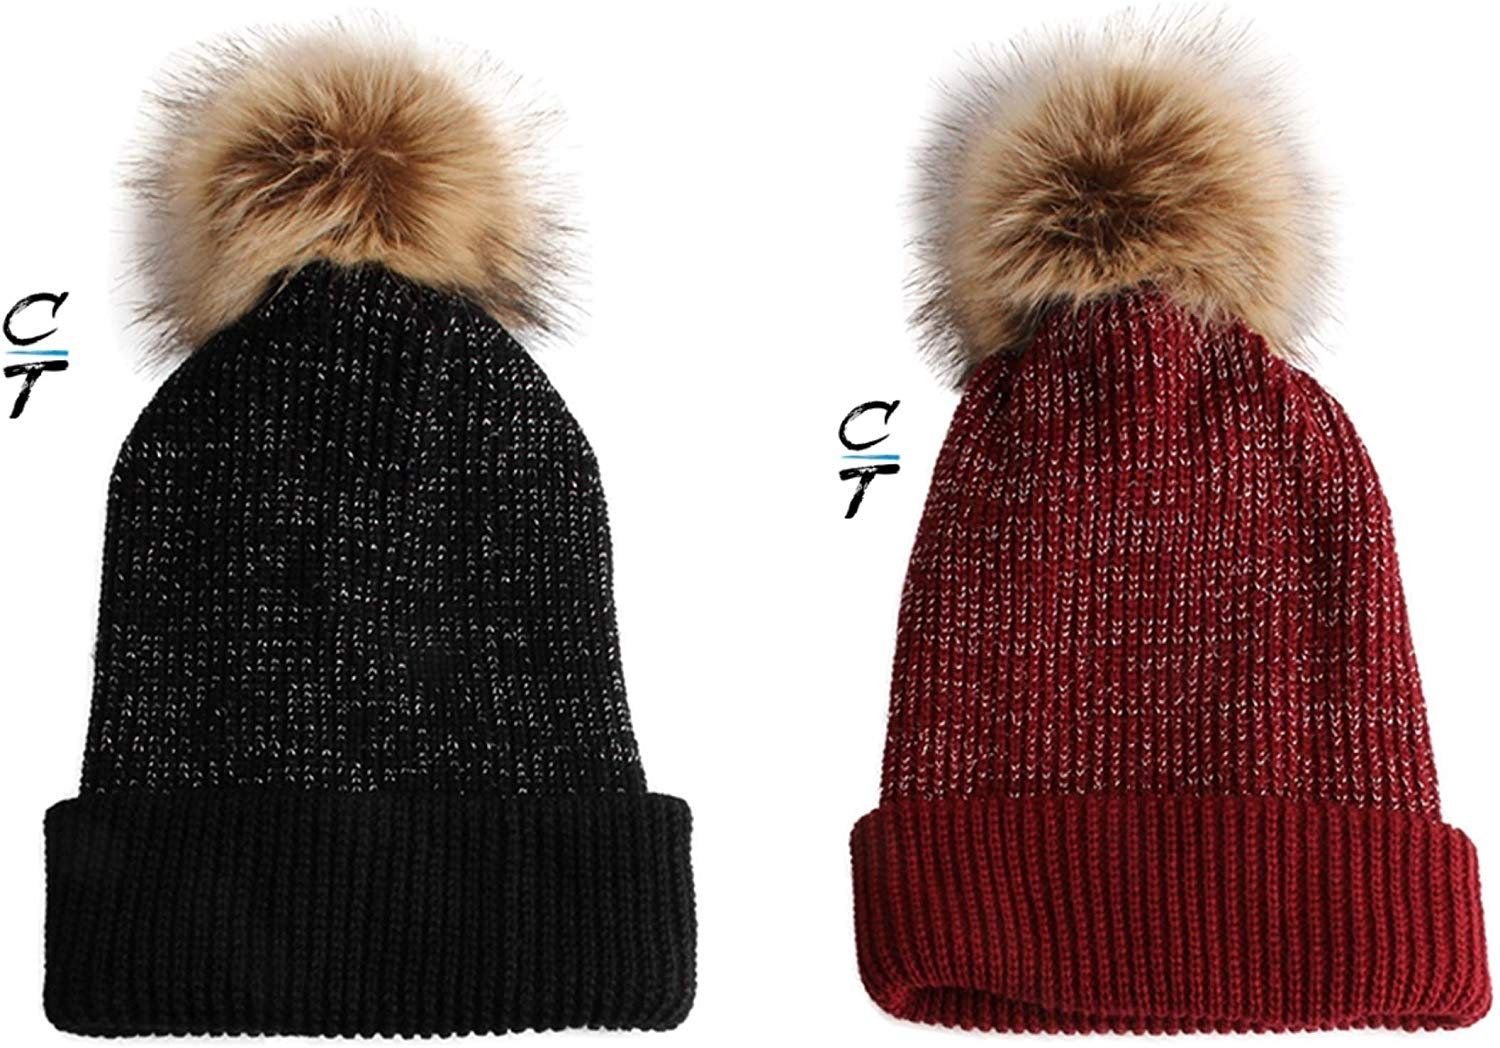 Cozy Time Slouchy Fur Pom Beanie Hat With Metallic Knitted Style for Extra Warmth and Comfort Black/ Red 2 Pack